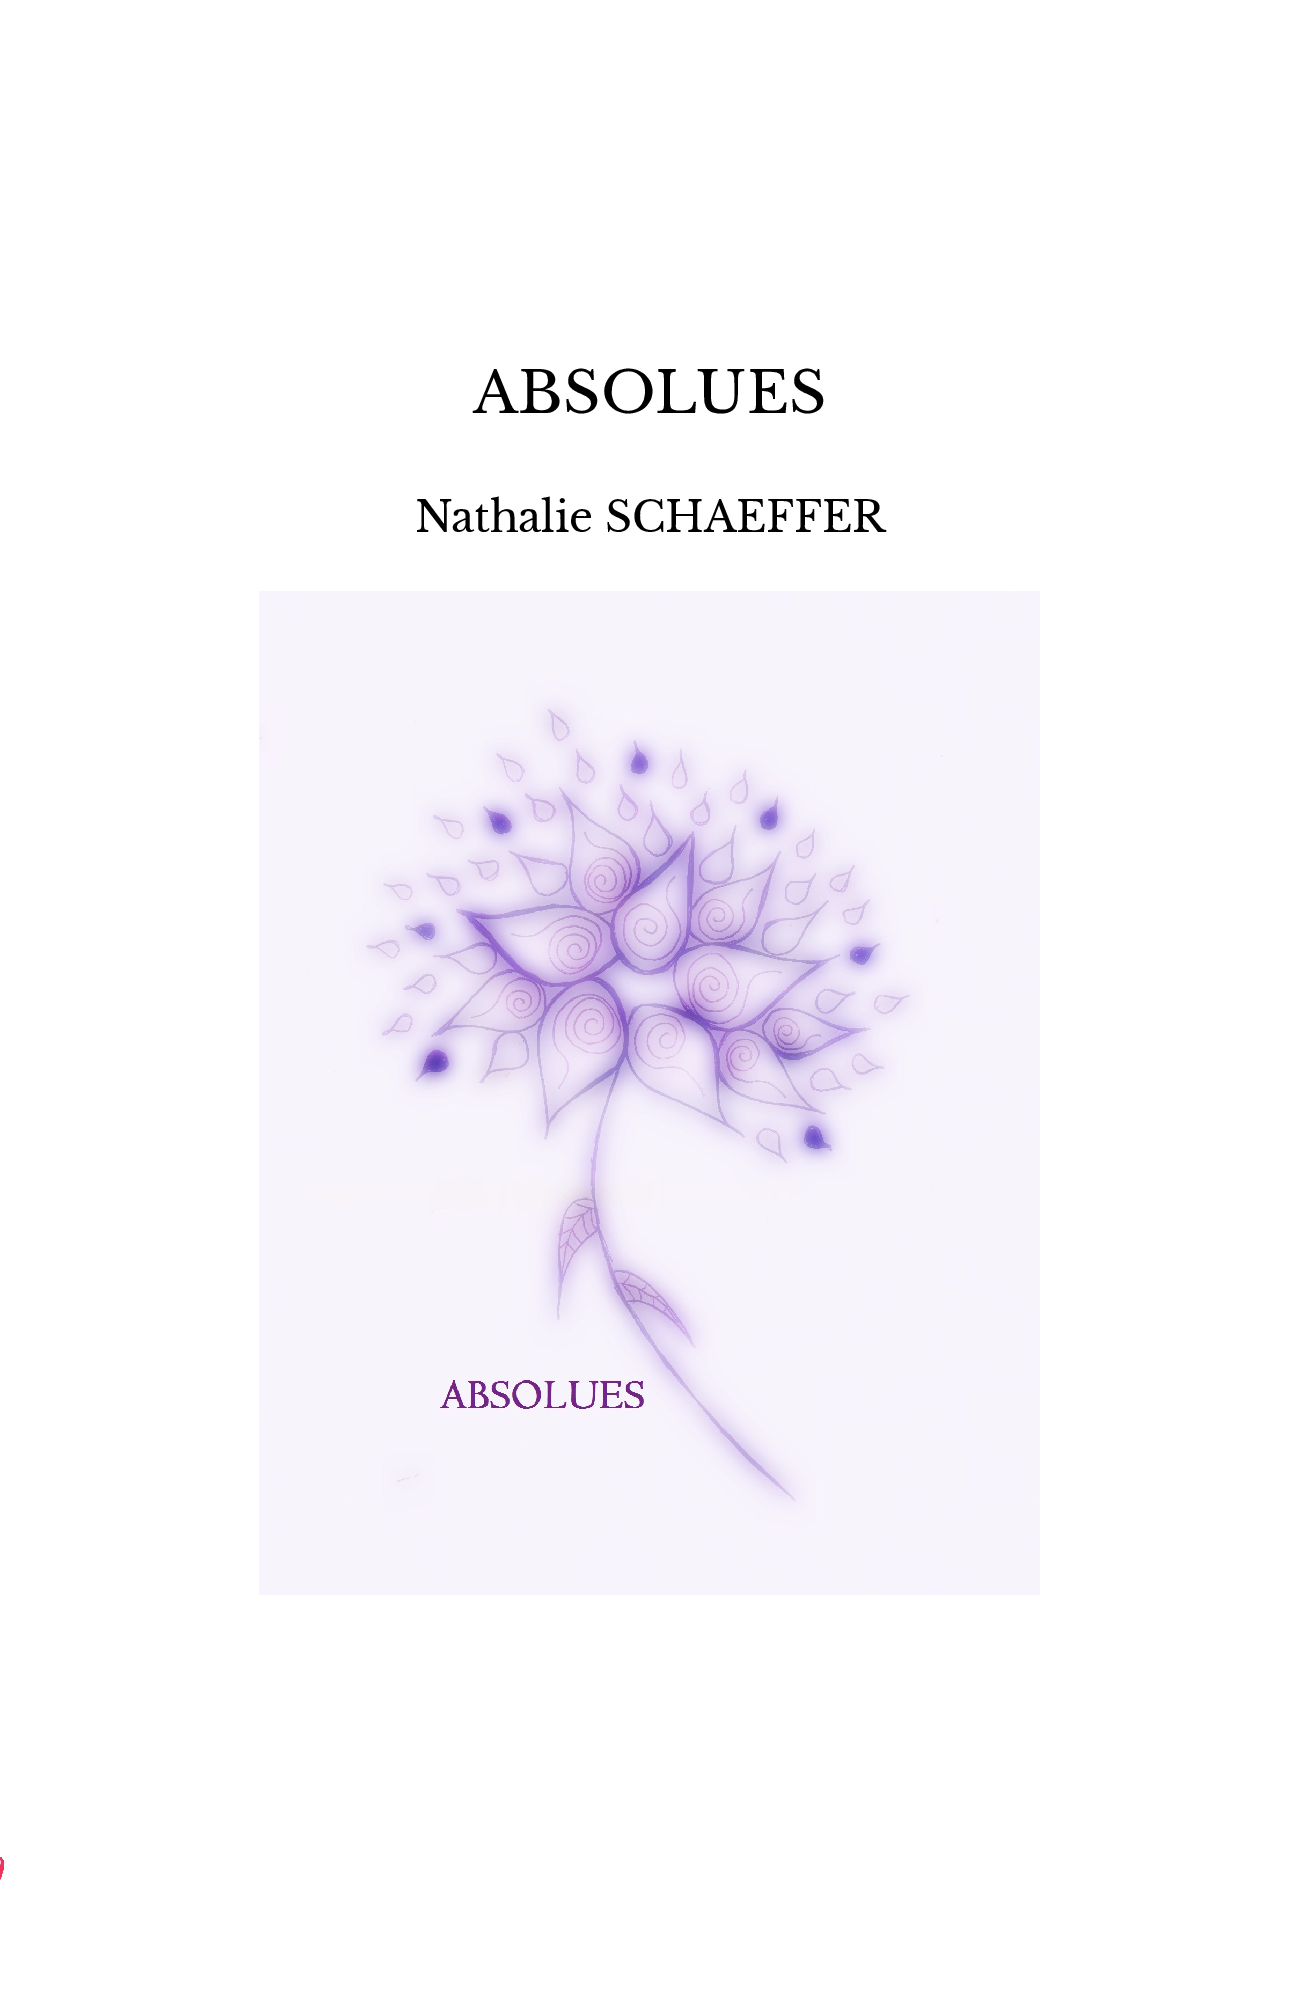 ABSOLUES